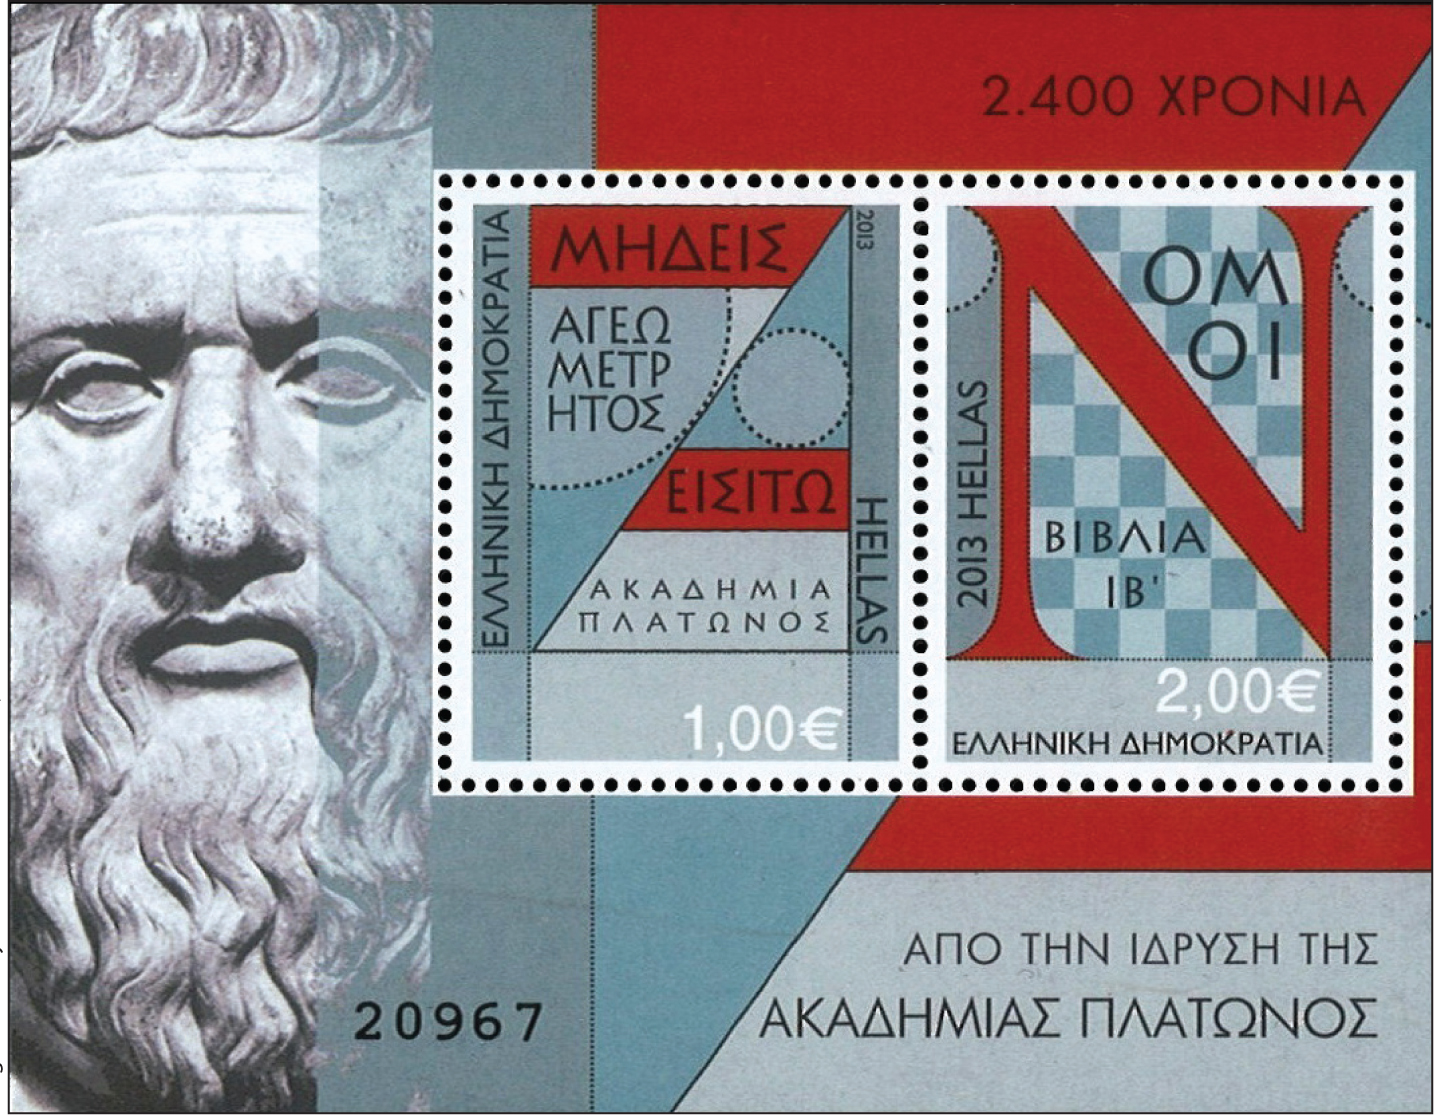 A red and gray Greek souvenir sheet from 2013 honors the 2,400th anniversary of the founding of the Platonic Academy by Plato (428-348 B.C.E.) in Athens around 387 B.C.E.Images courtesy of Stanford T. Shulman, MD.